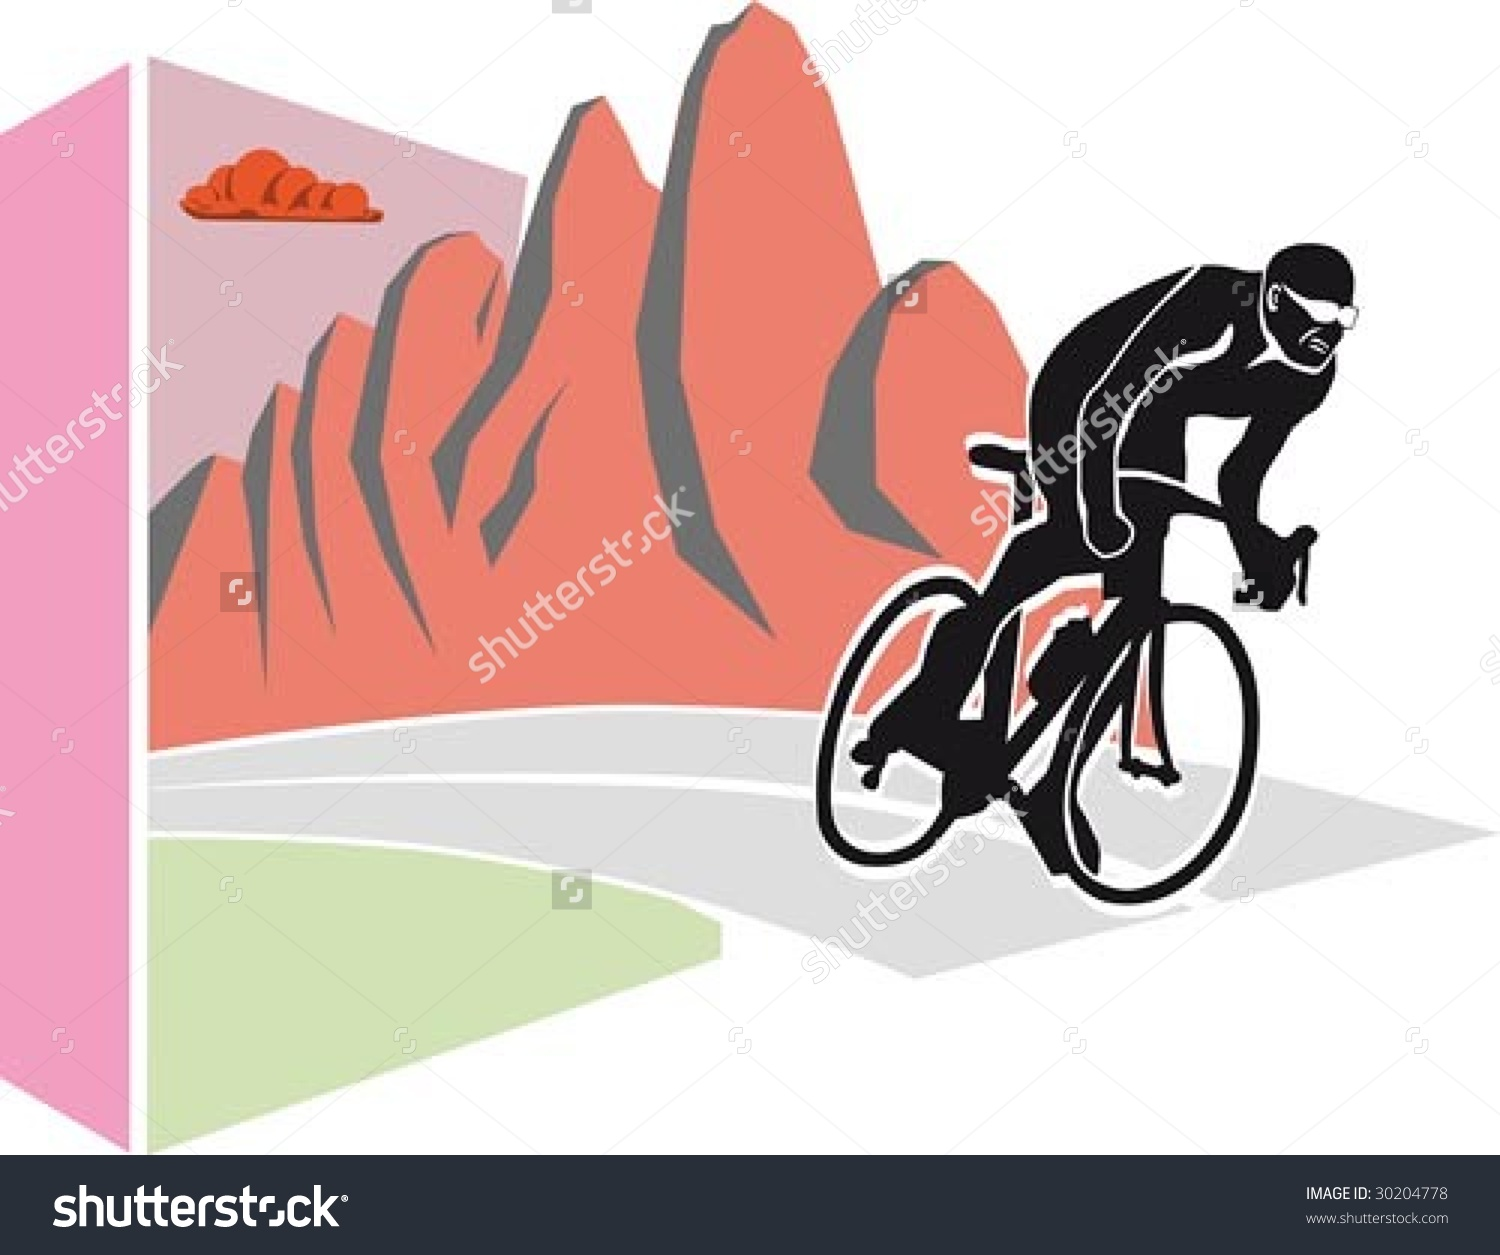 Professional Cyclist At Giro D'Italia Stock Vector Illustration.